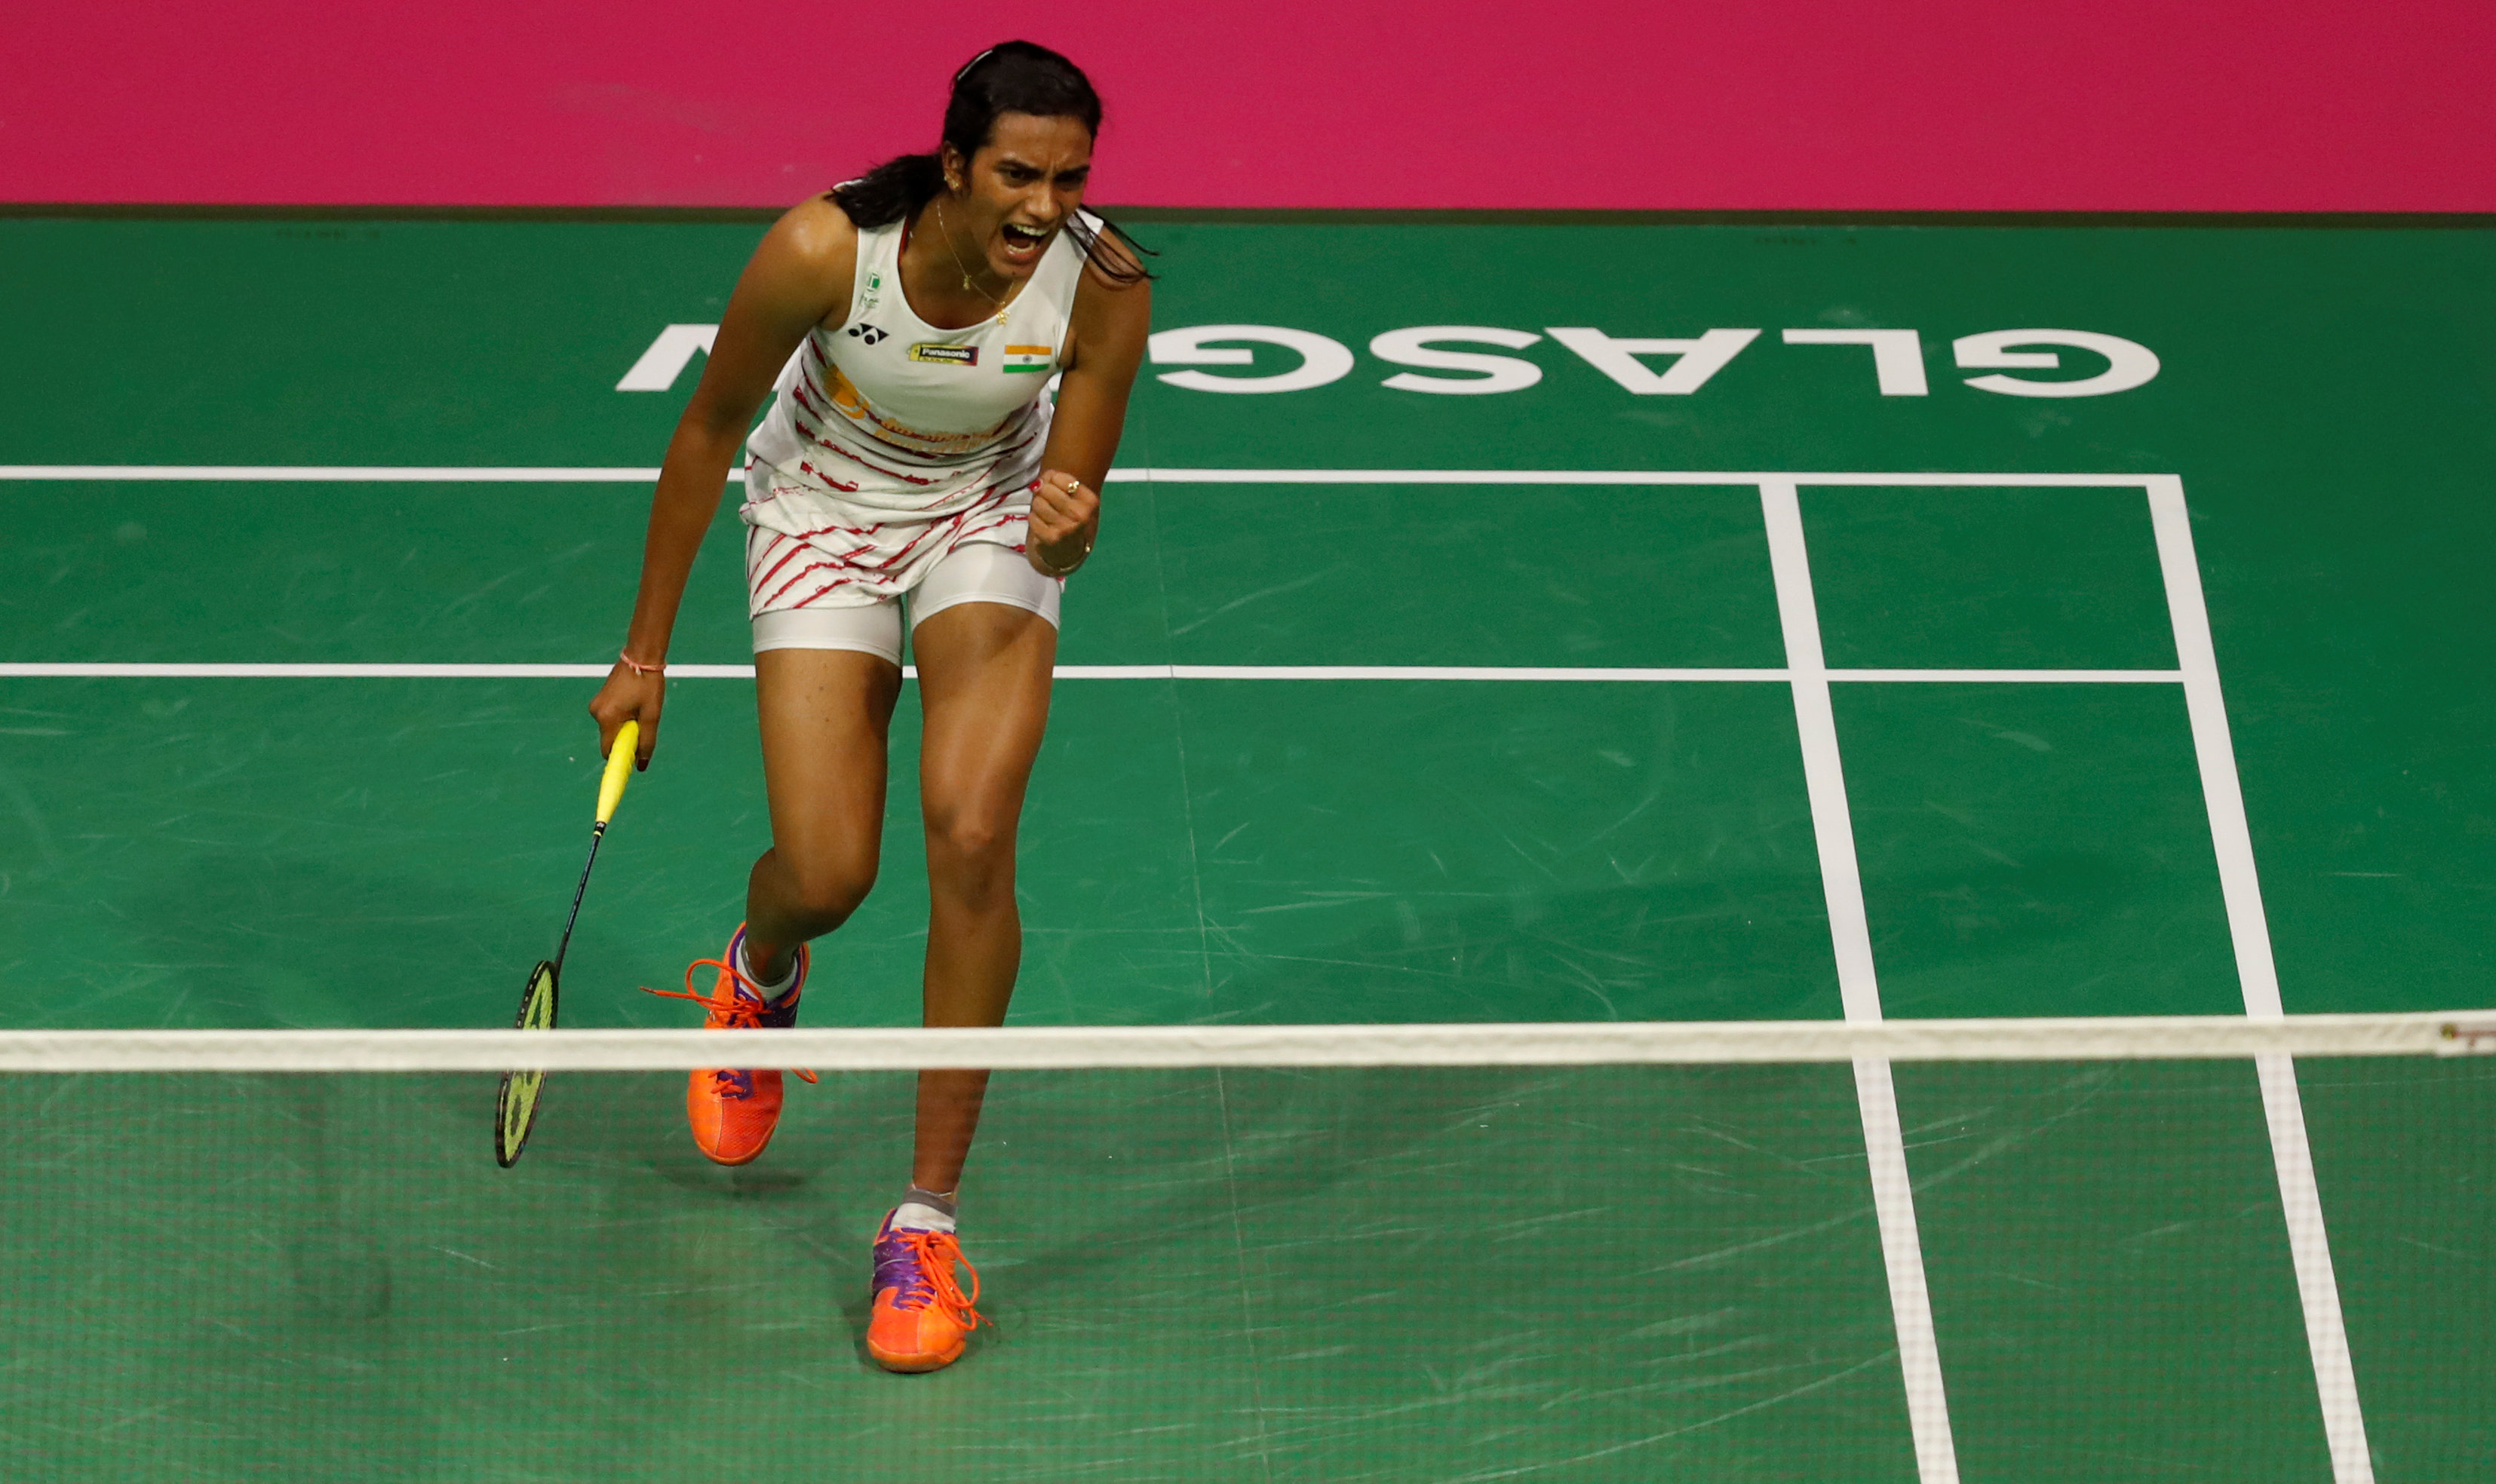 Badminton: P.V. Sindhu on course to become first Indian world champion shuttler